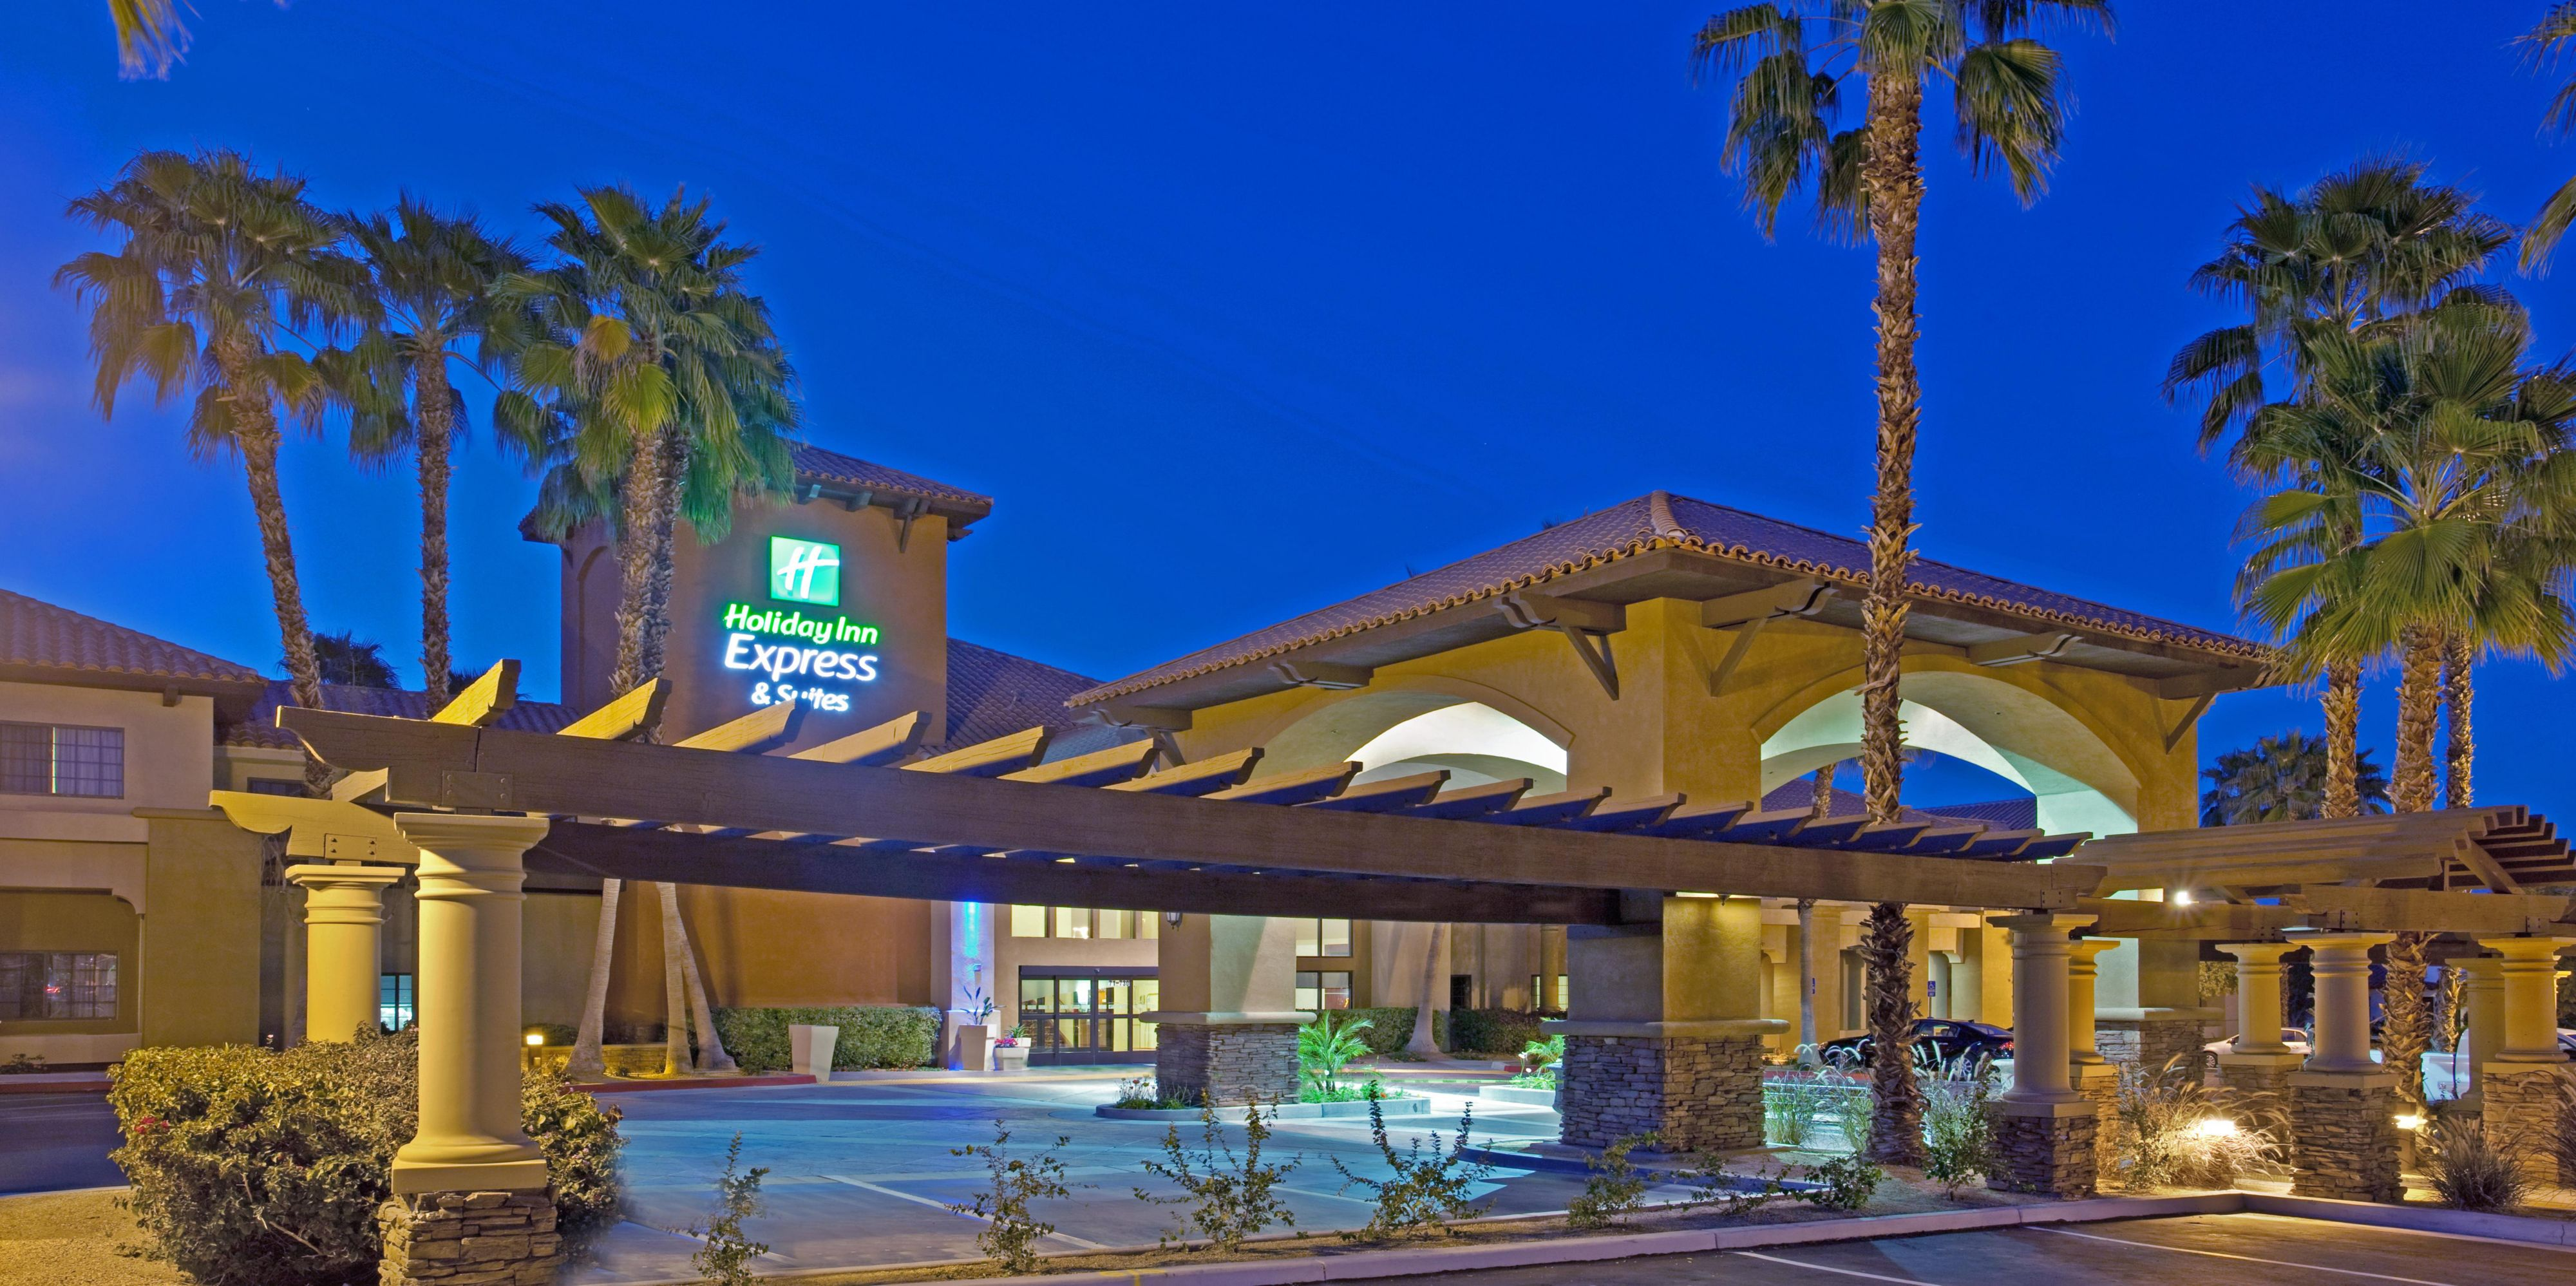 Holiday Inn Express U0026 Suites Rancho Mirage   Palm Spgs Area Hotel By IHG